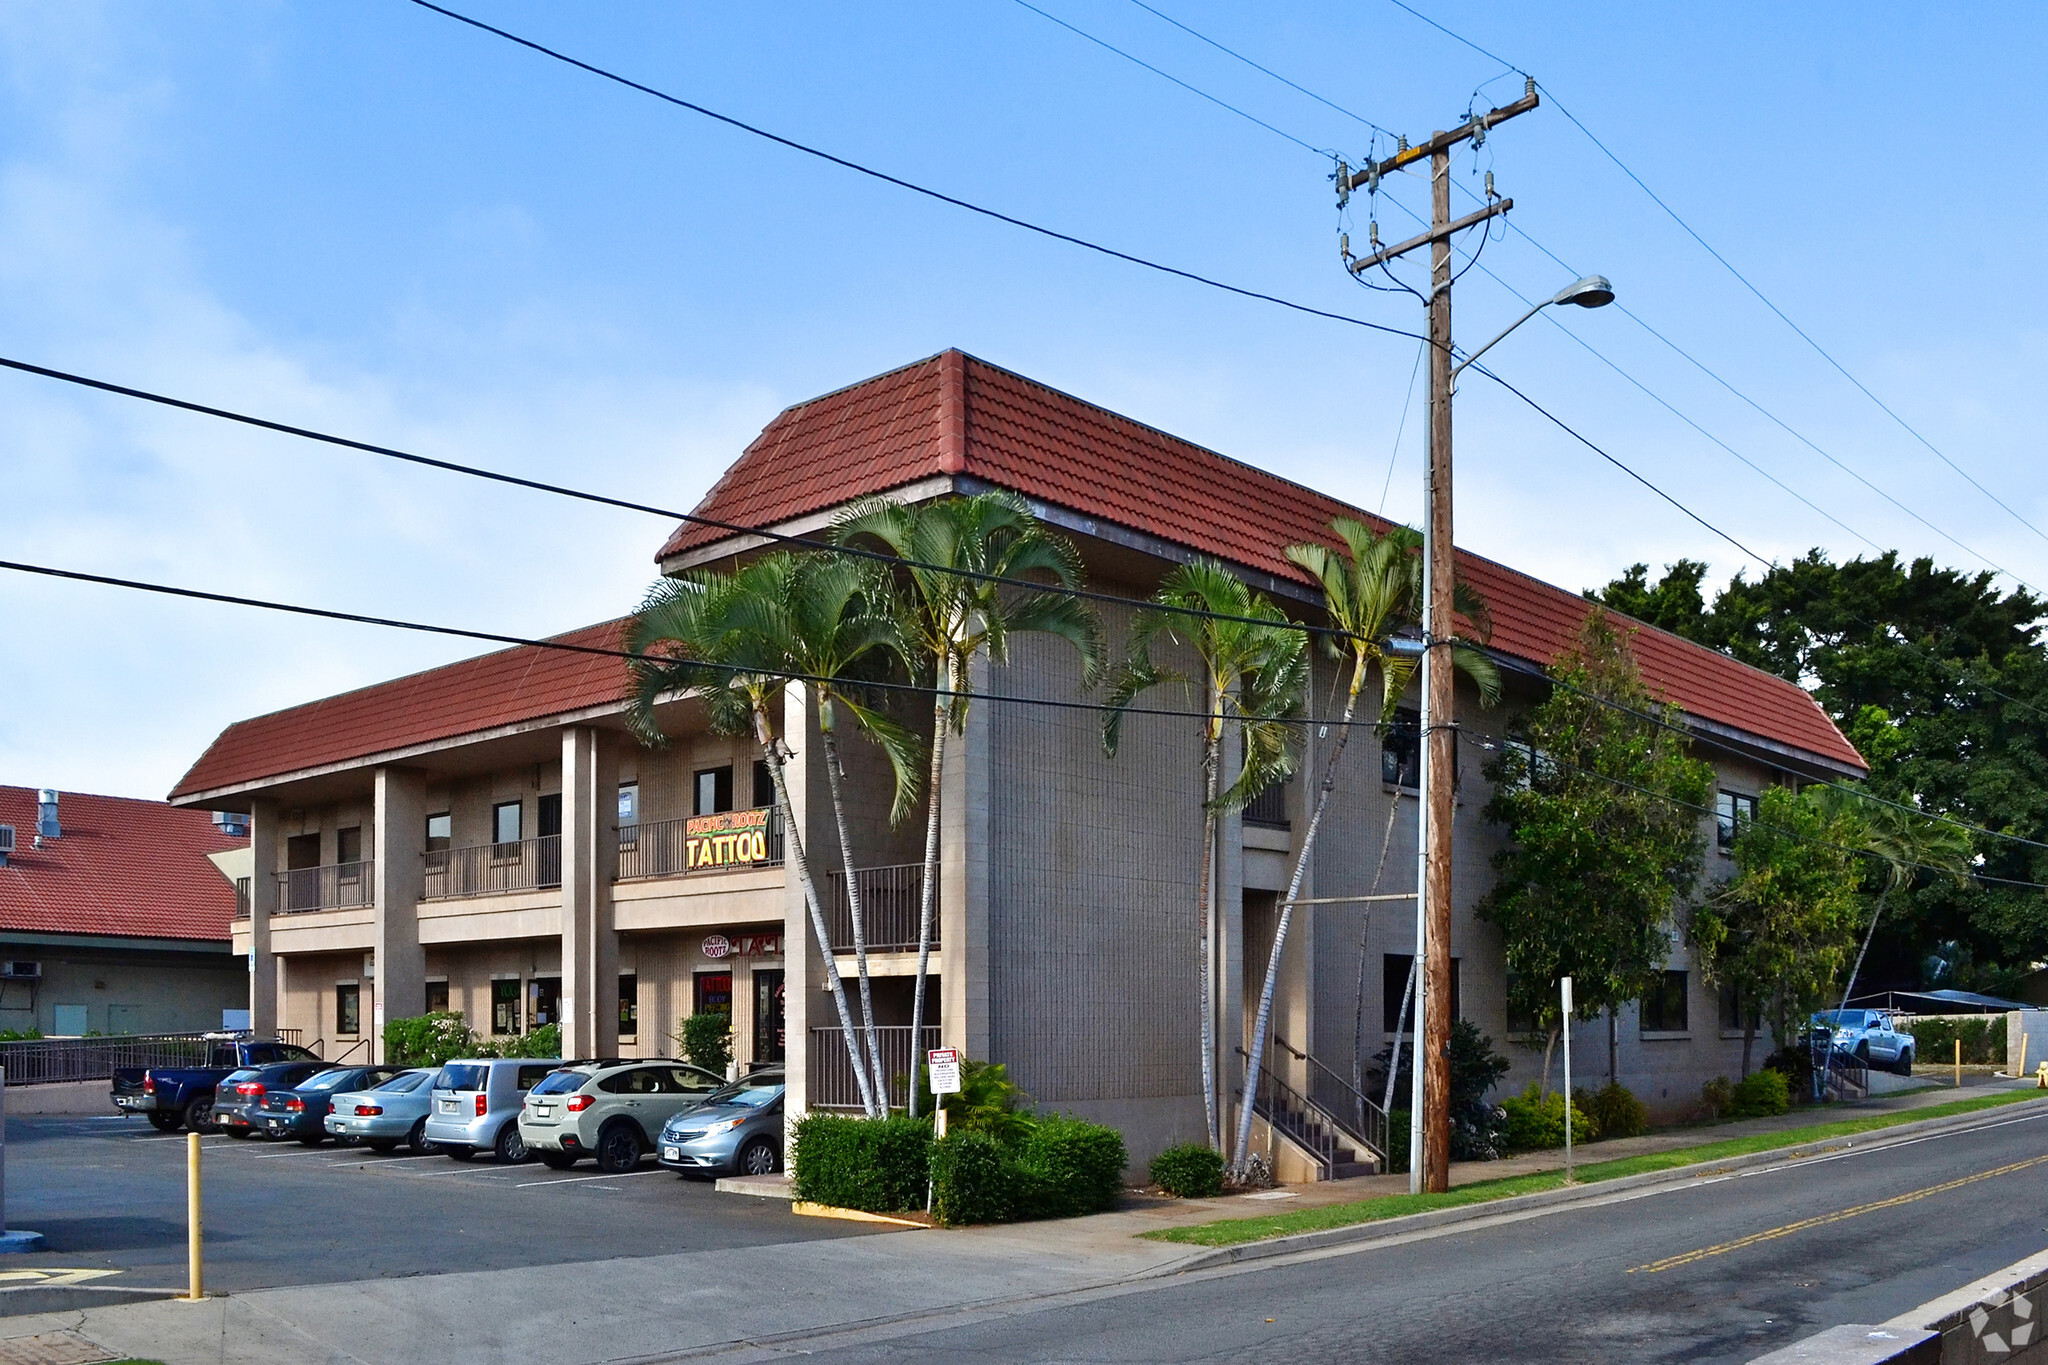 Commercial_Real_estate_for_Rent_on_Maui_1847_S_Kihei_Rd_Kihei